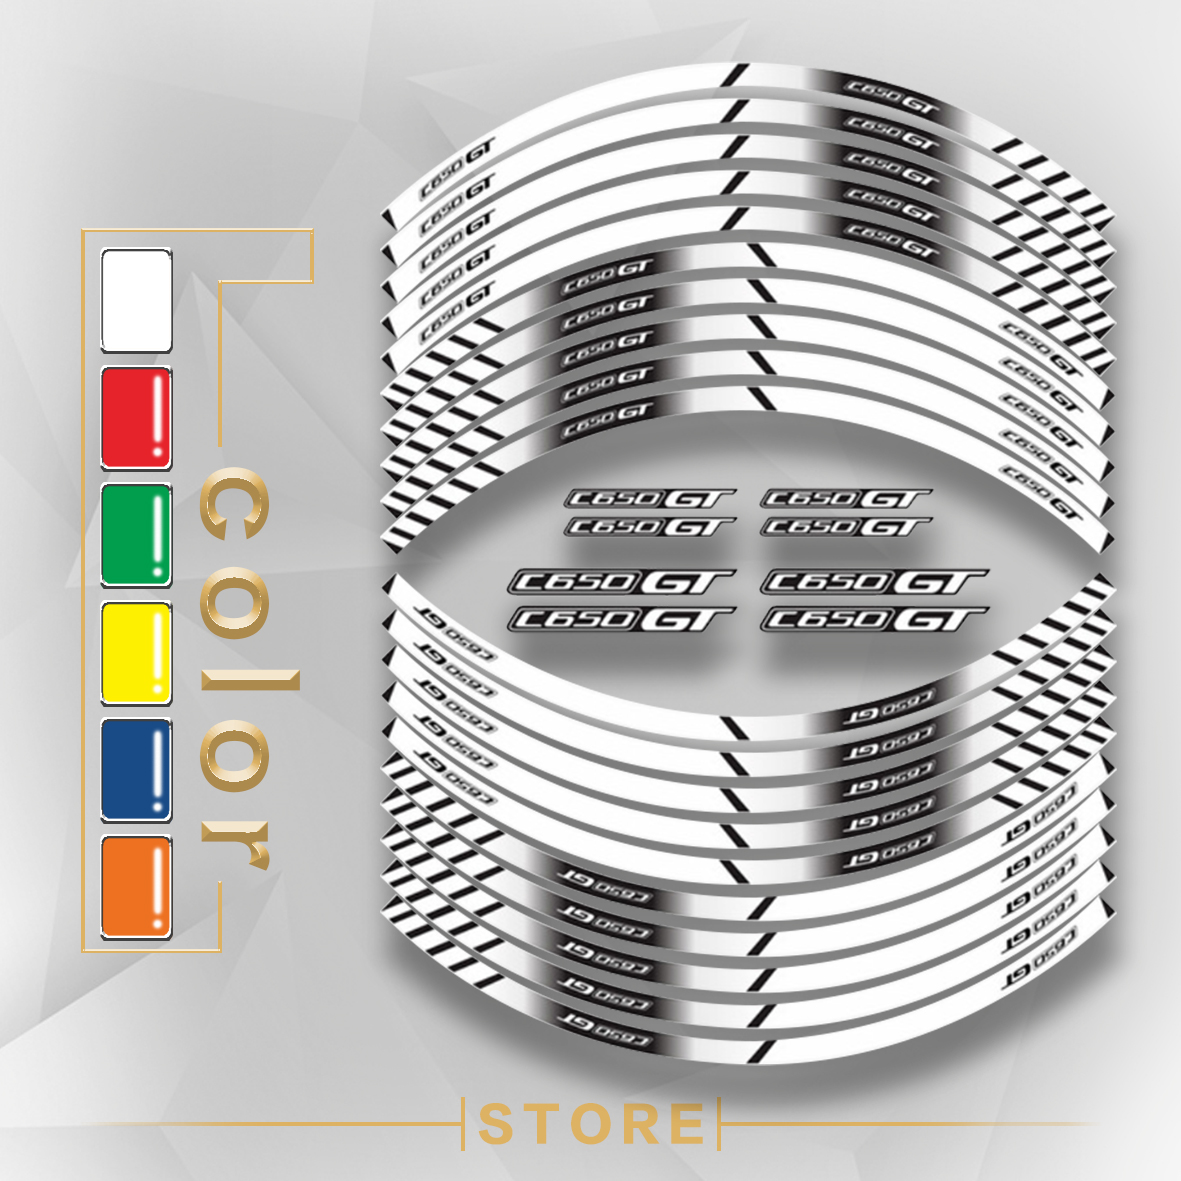 New Motorcycle Tire Reflective stickers inner wheel stripes decoration decals For <font><b>BMW</b></font> <font><b>C650</b></font> <font><b>GT</b></font> image